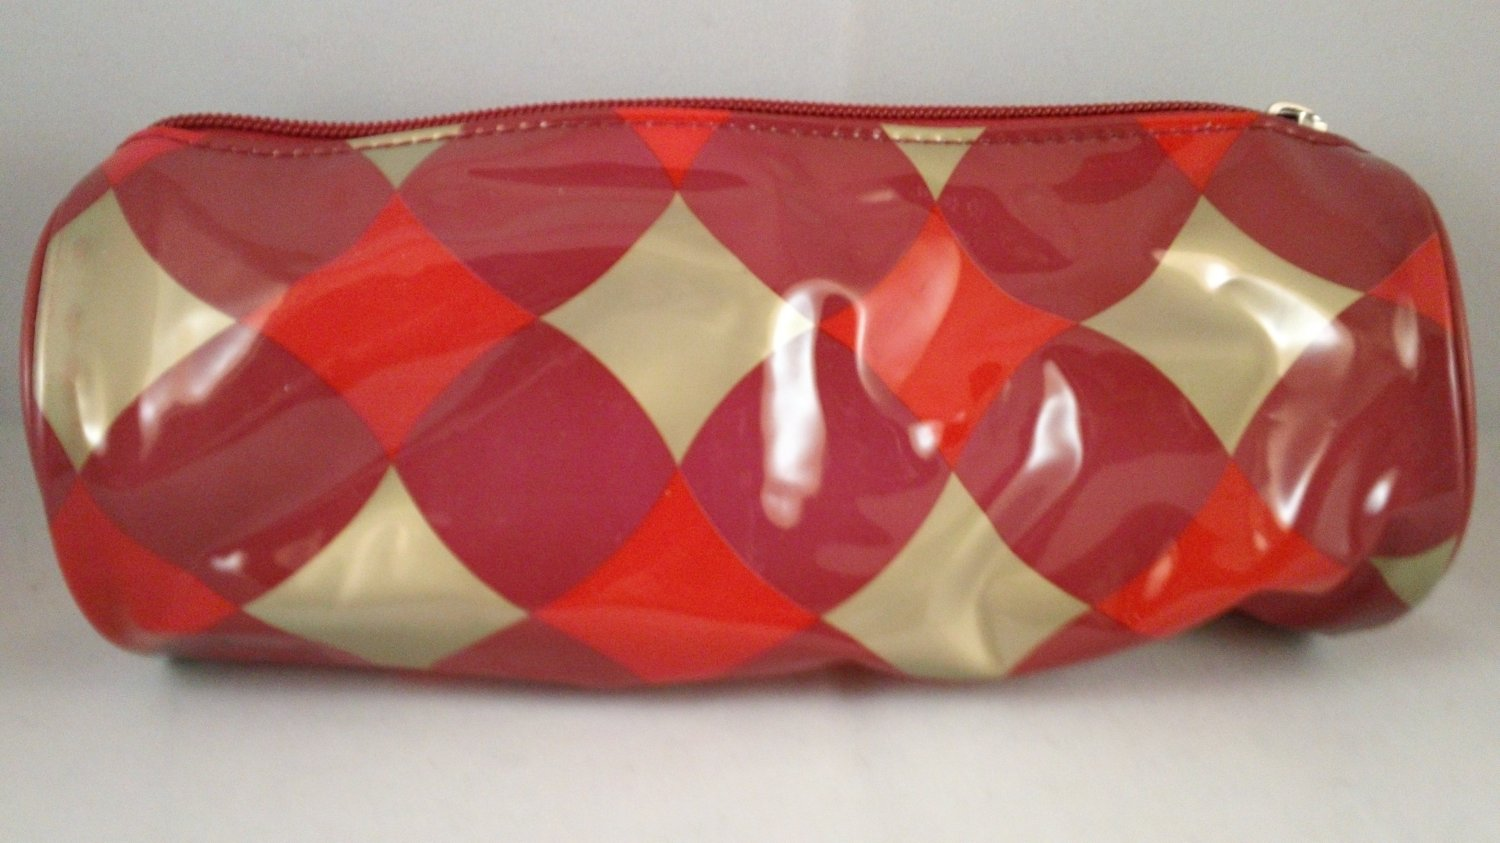 Ulta Makeup Bag Cosmetic clutch purse pouch holiday red gold